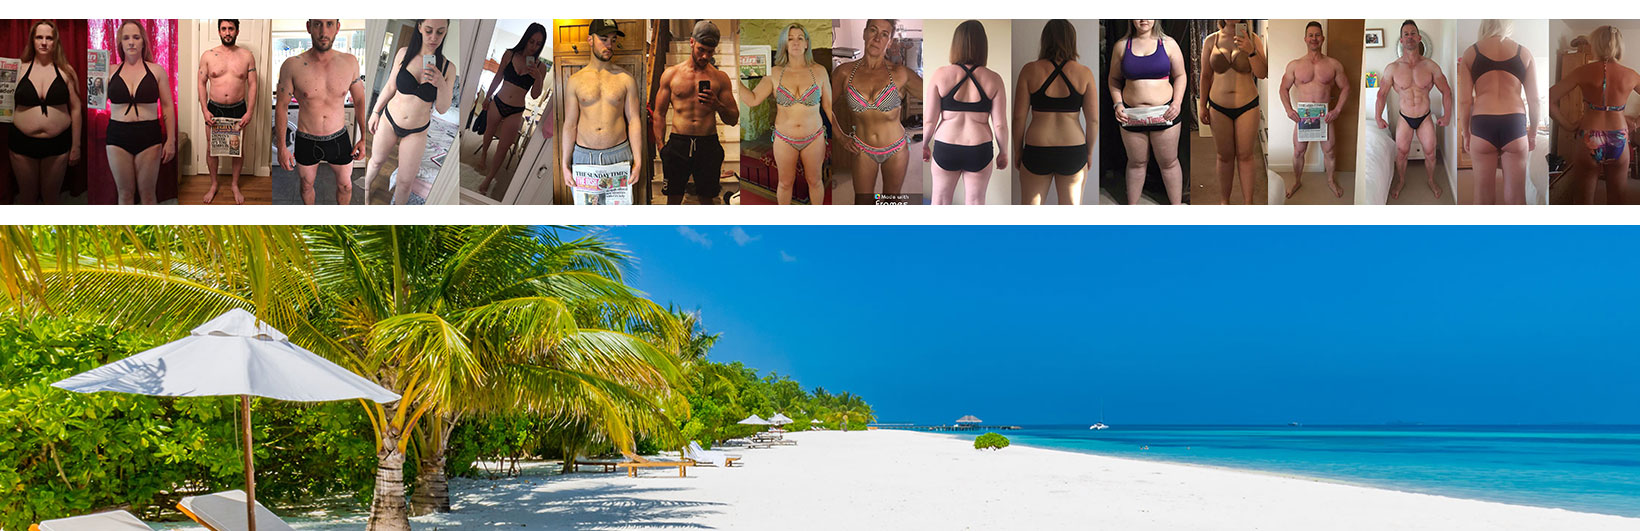 Join the transformation! - Next 12 Week Transformation Starts May 13th 2019!